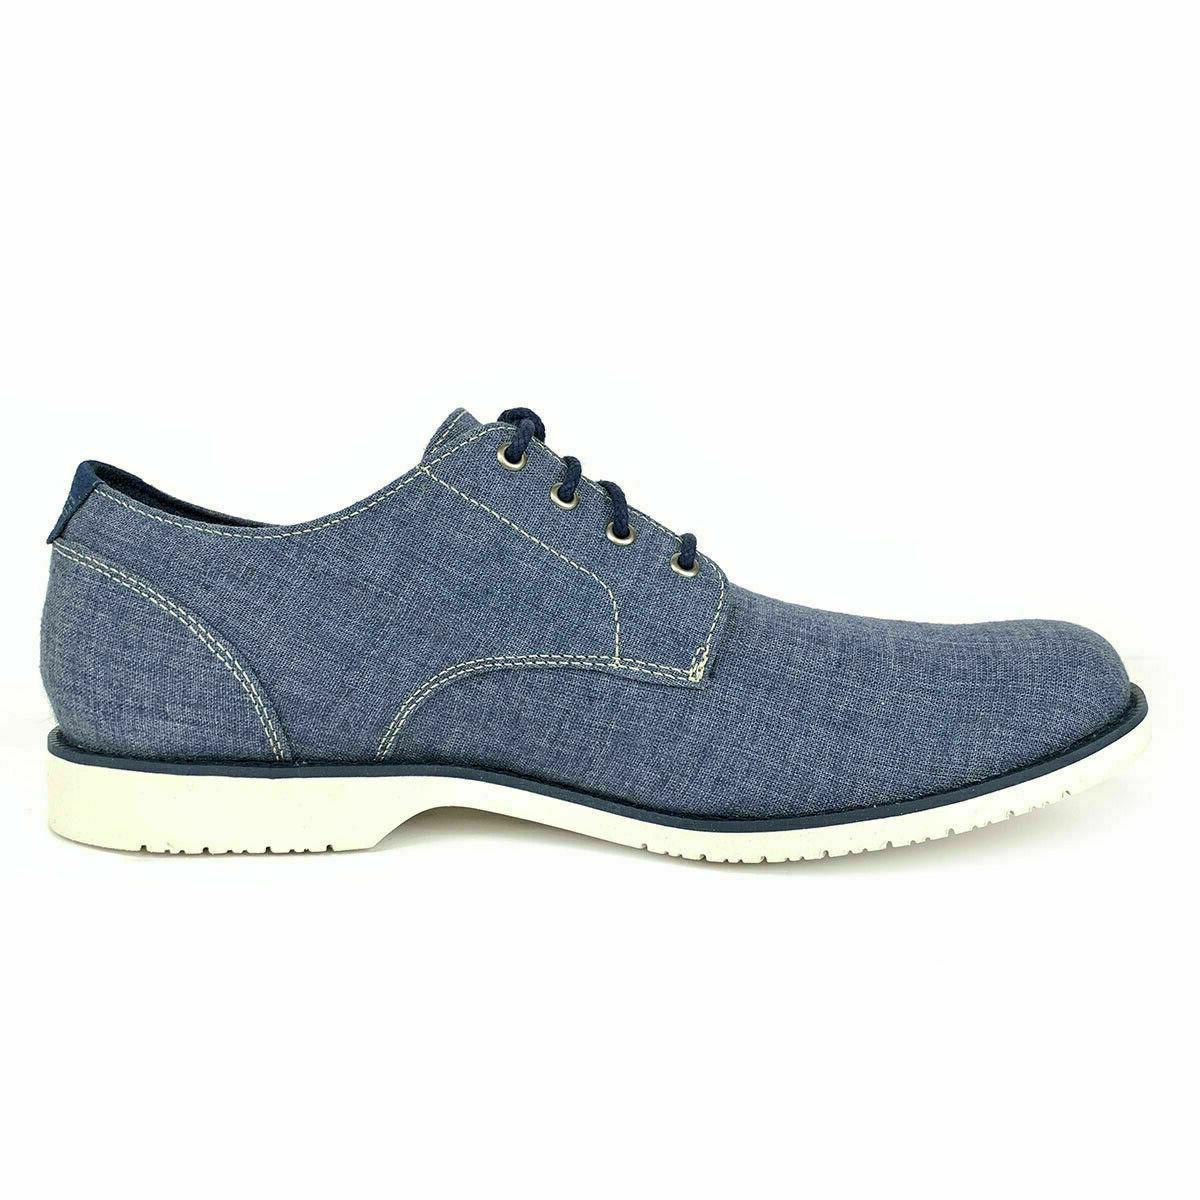 TIMBERLAND CANVAS OXFORD SHOES